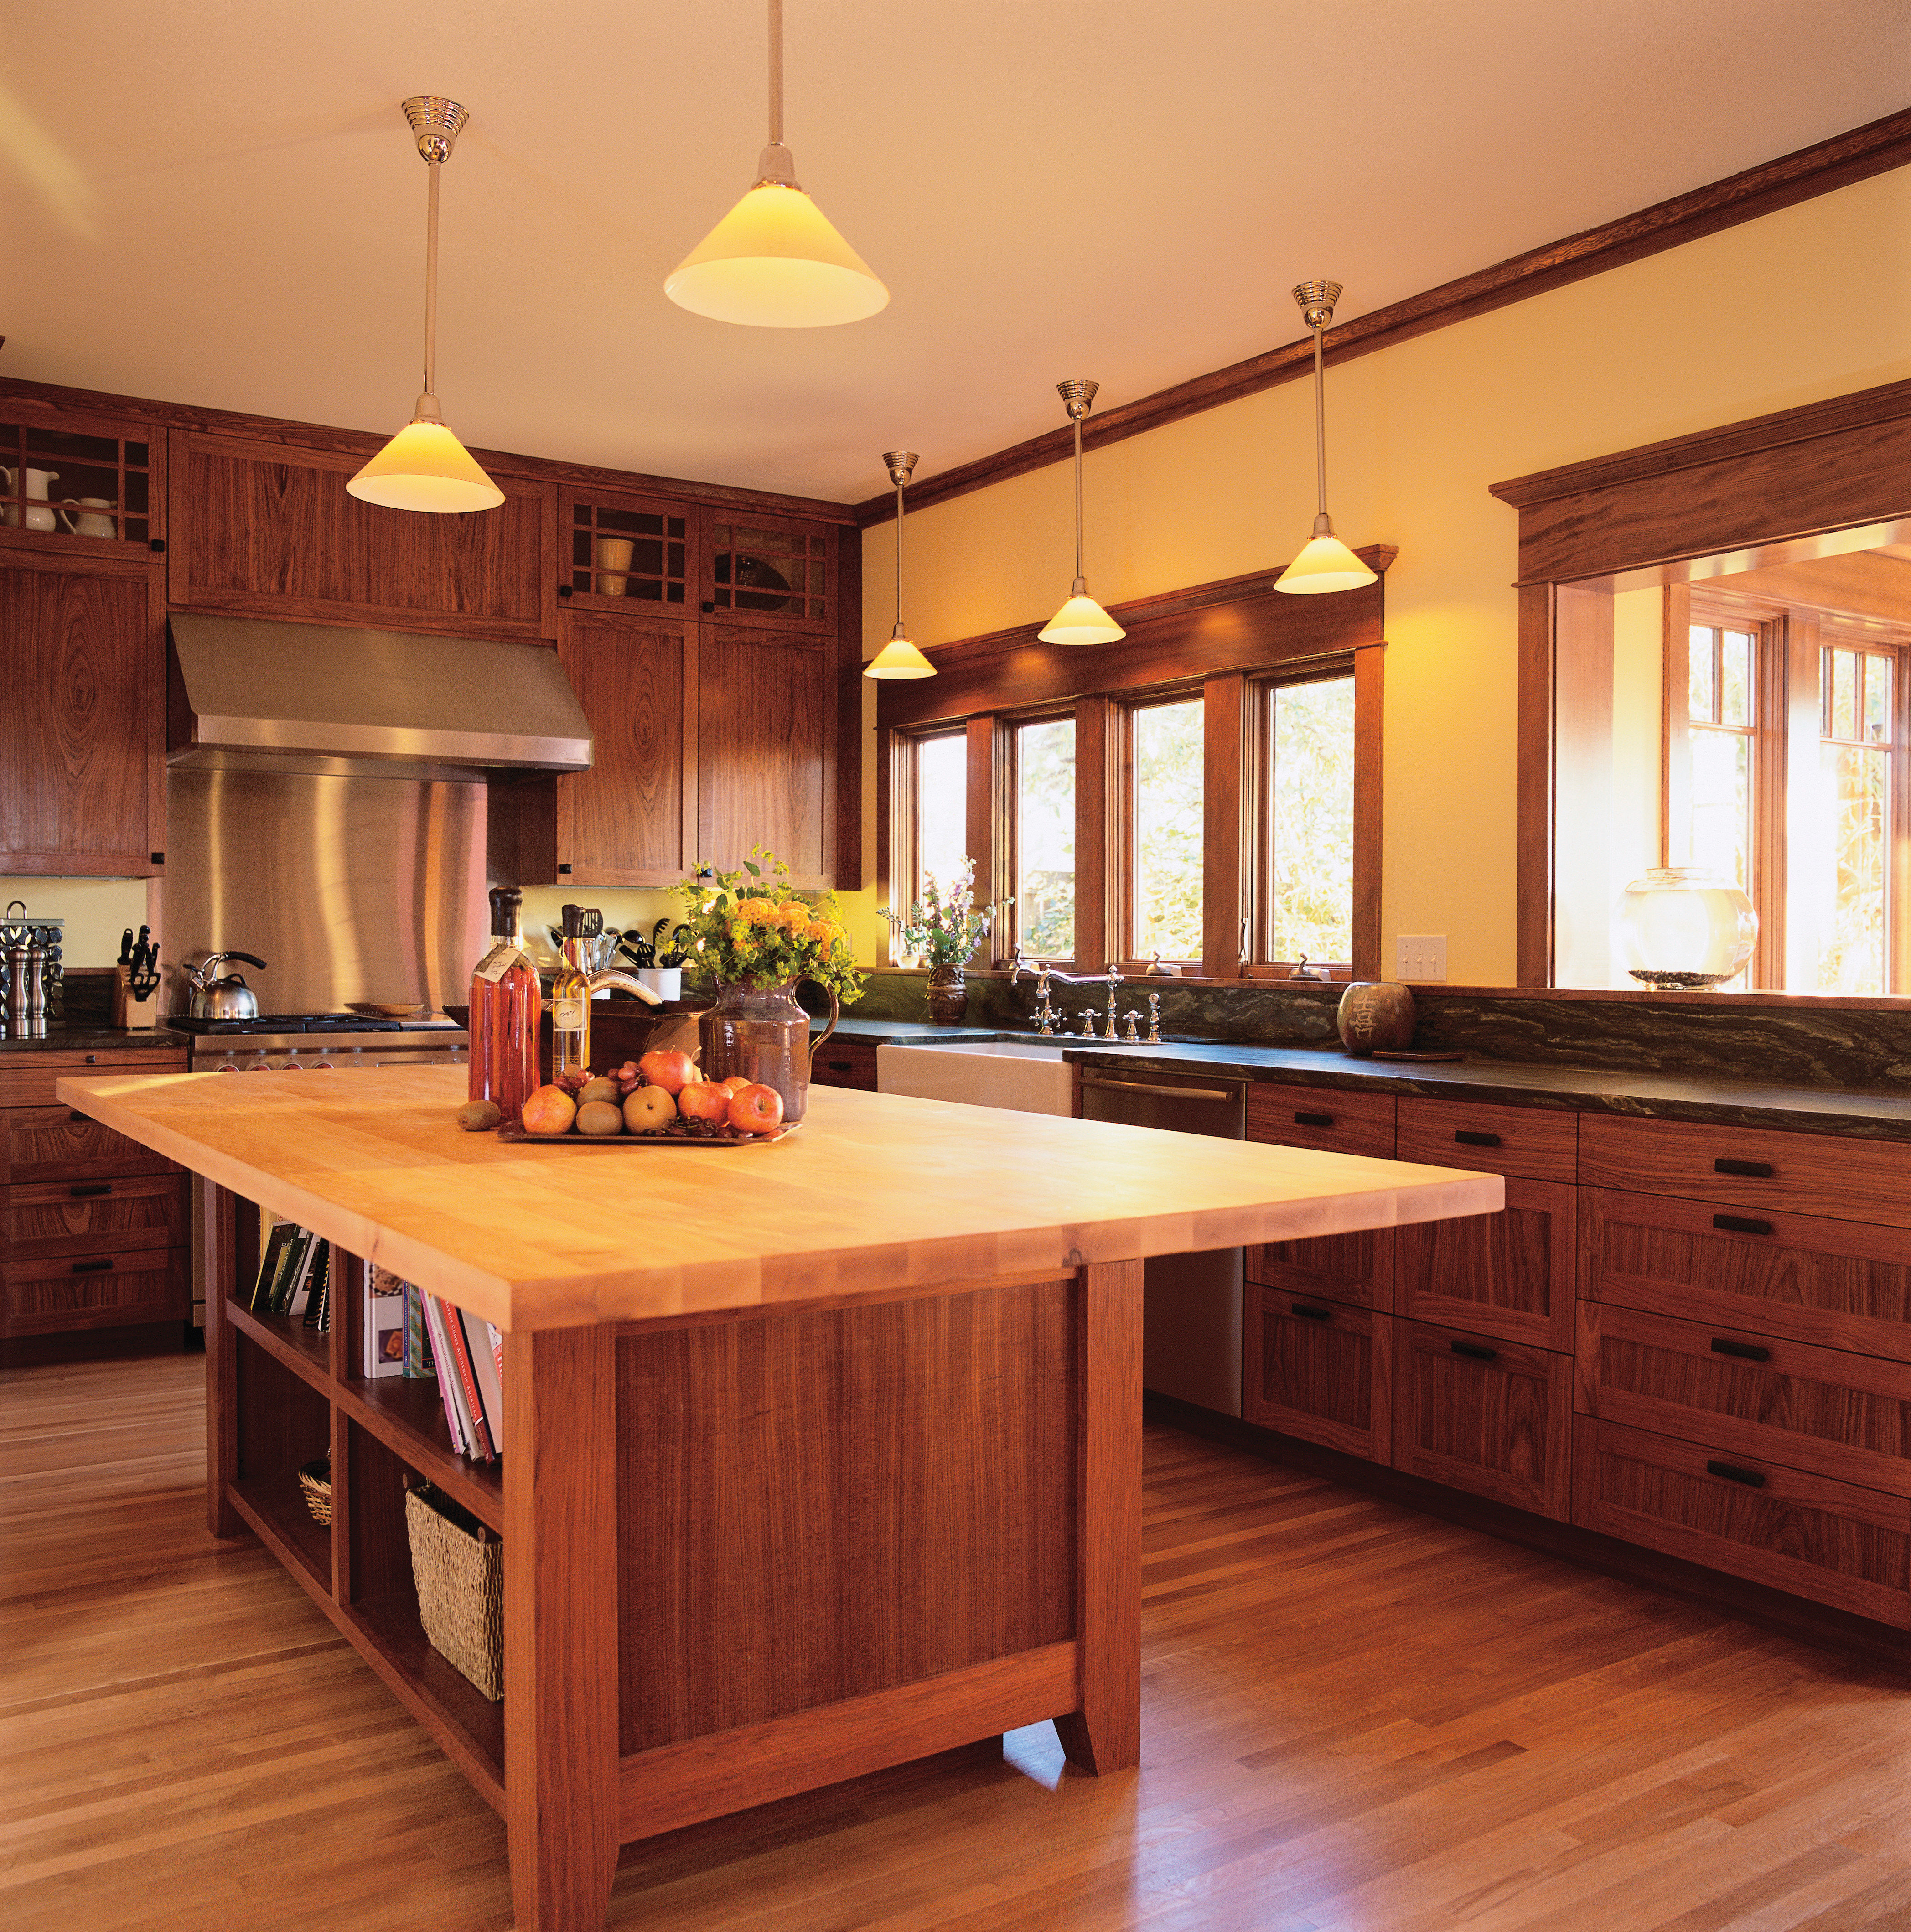 Wood Floors In Kitchen: The Options Of Best Floors For Kitchens